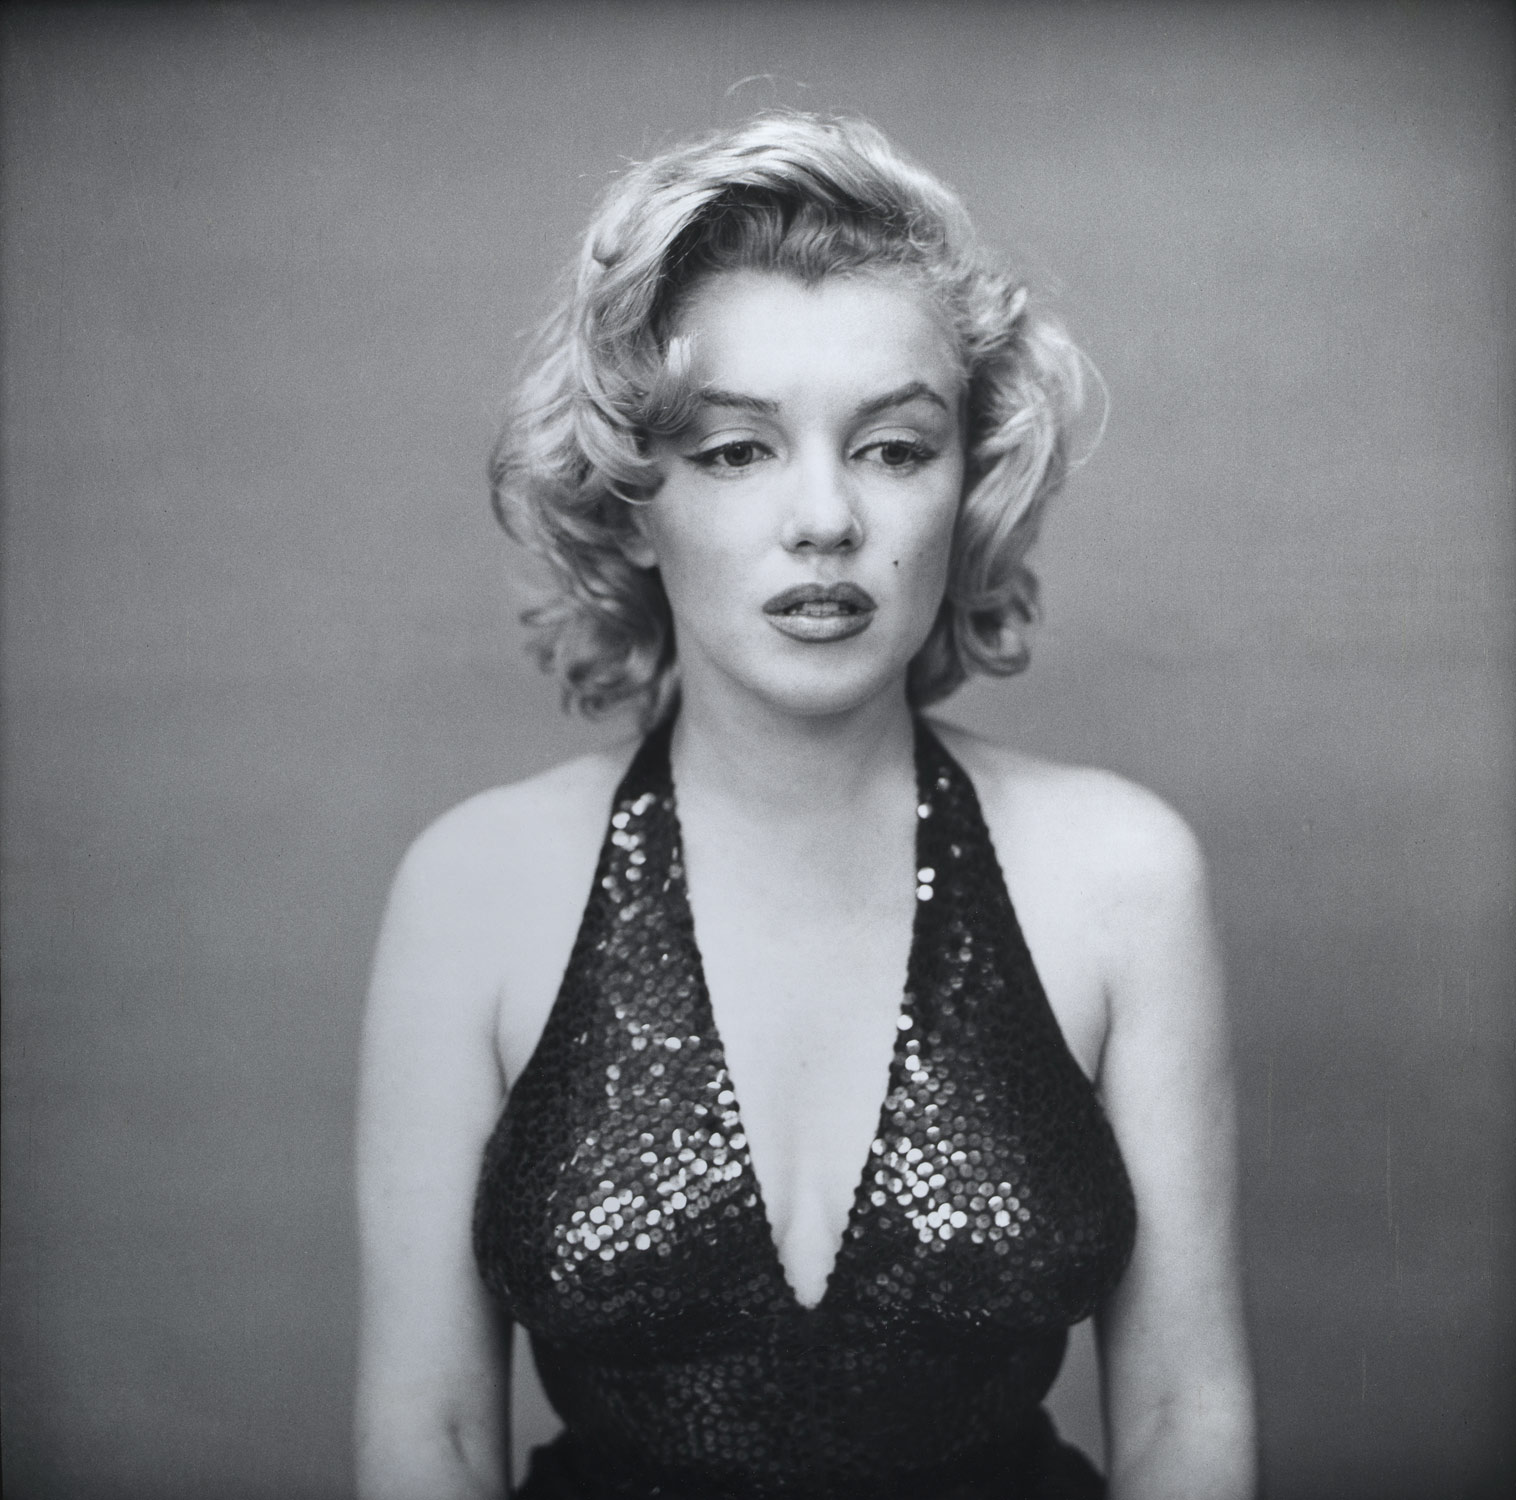 Marilyn Monroe, Actress, New York City